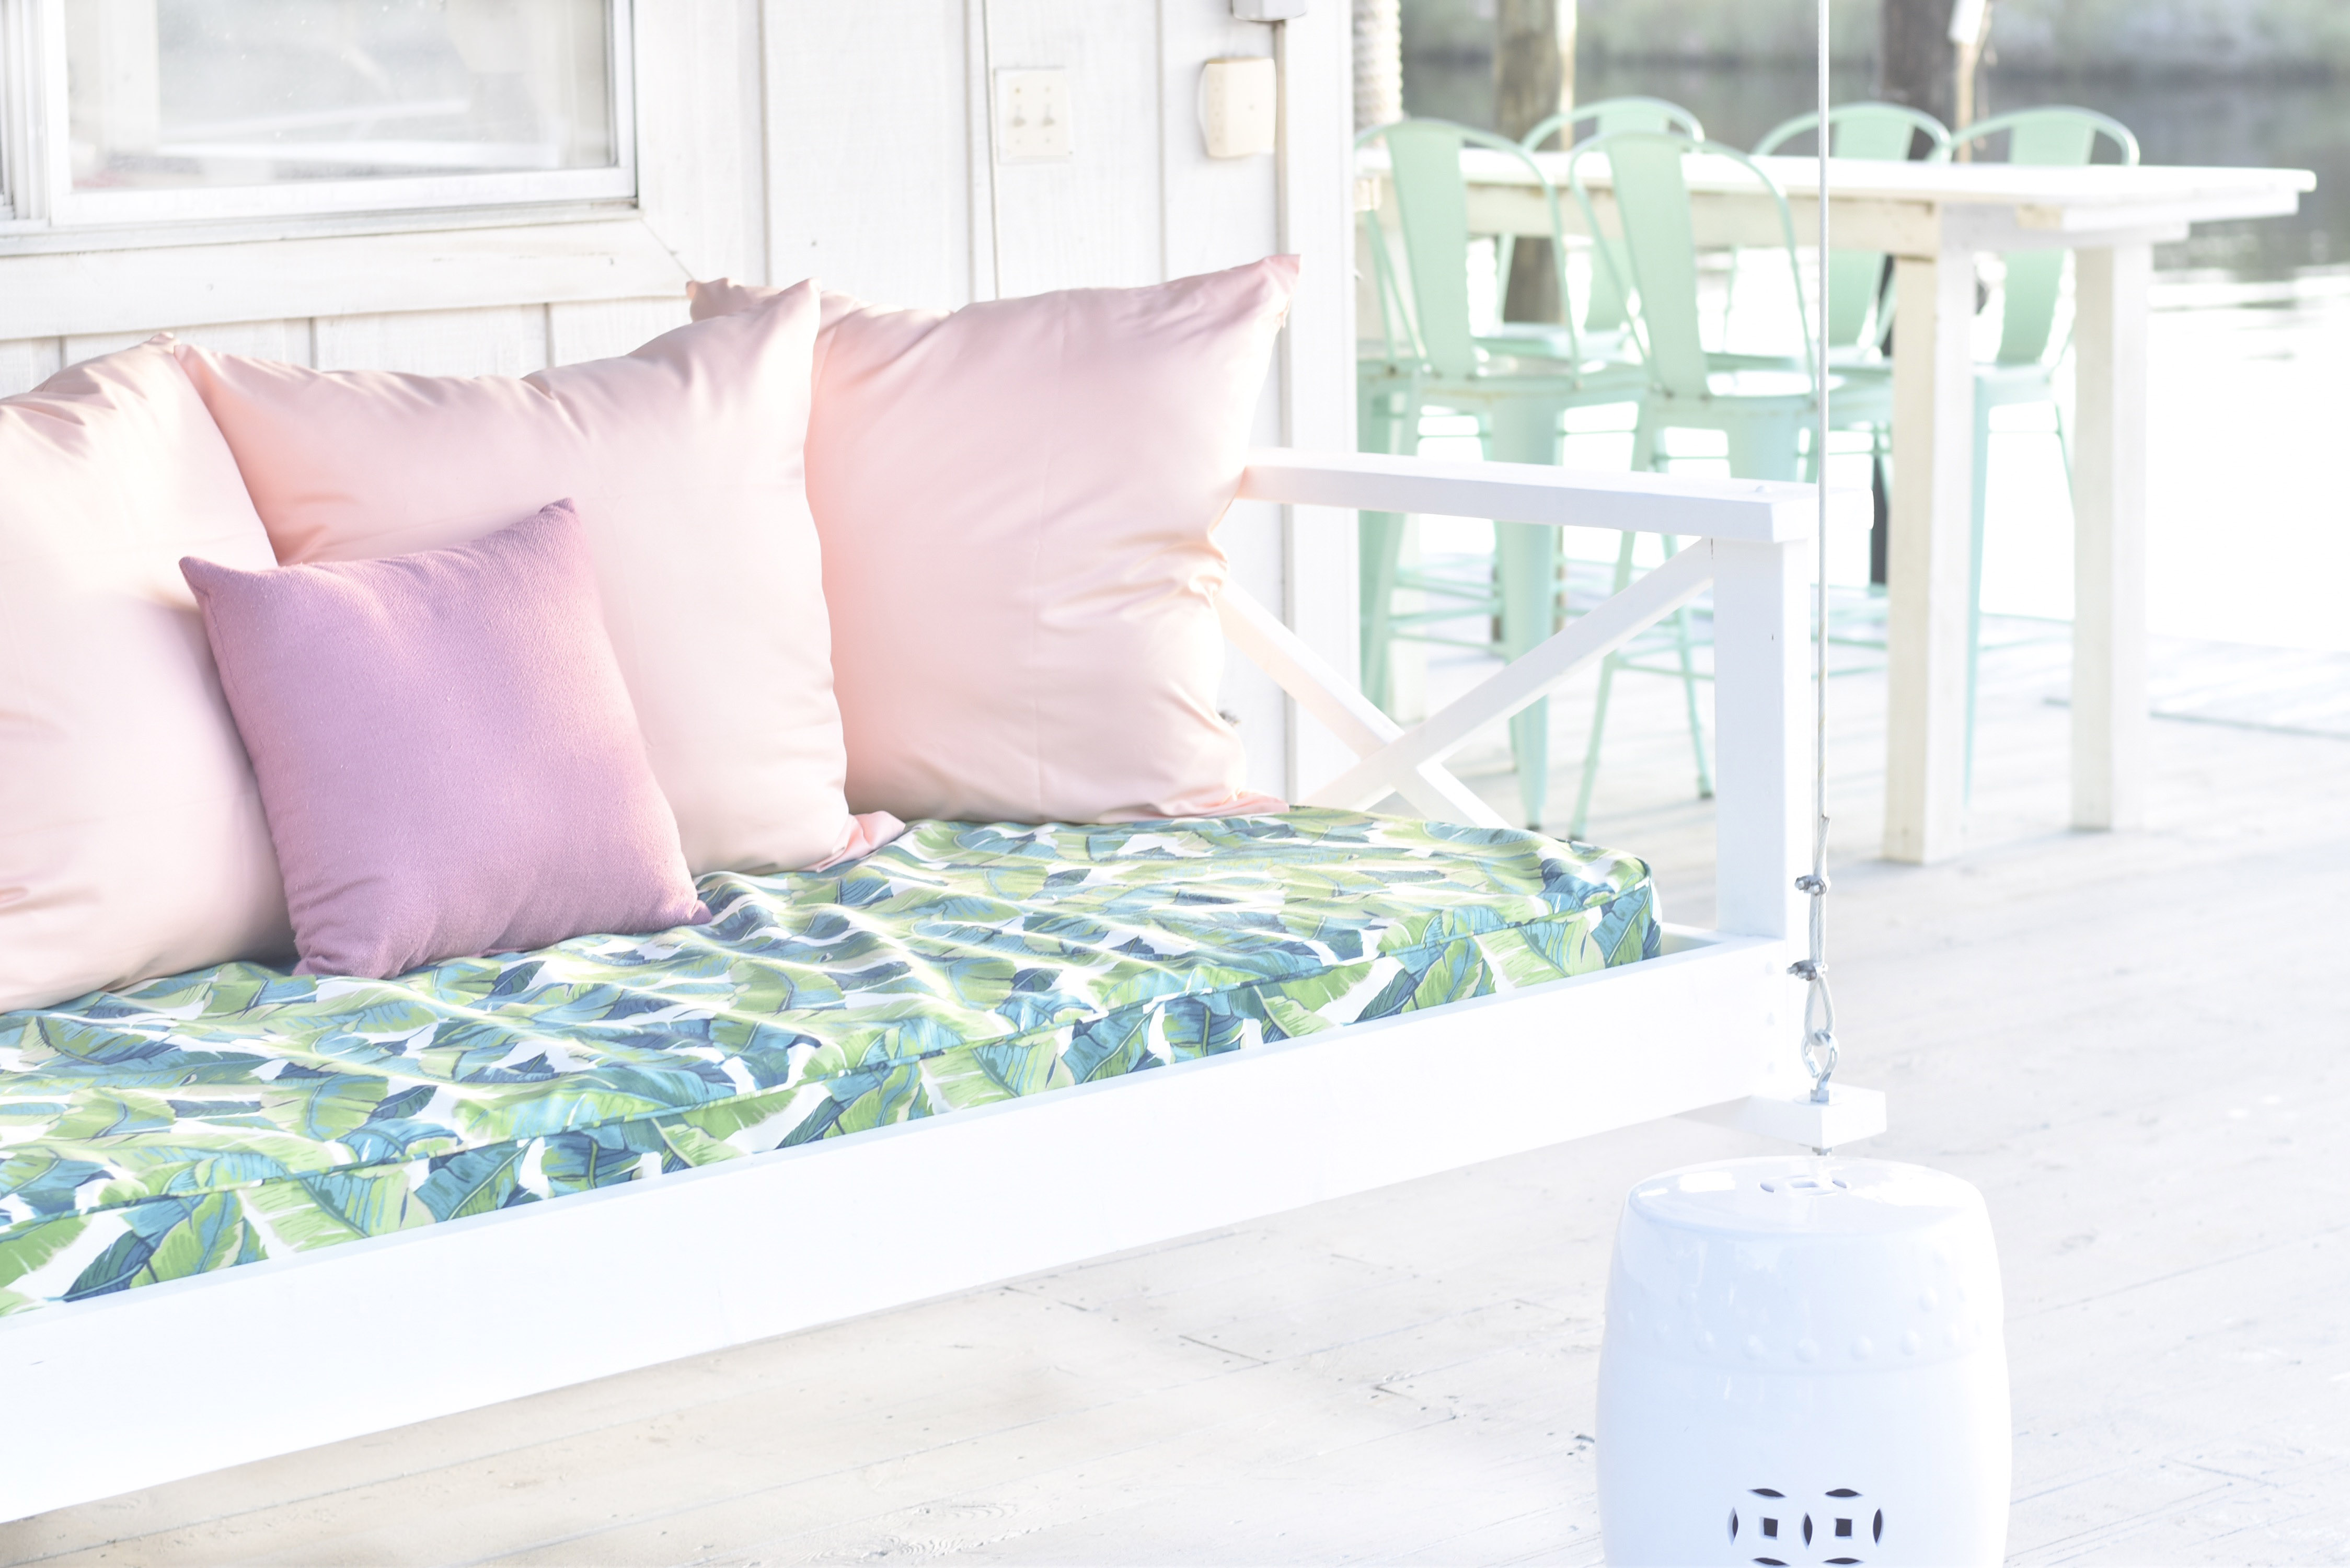 Jami Ray's chic swing bed on the dock by Nate and Lane